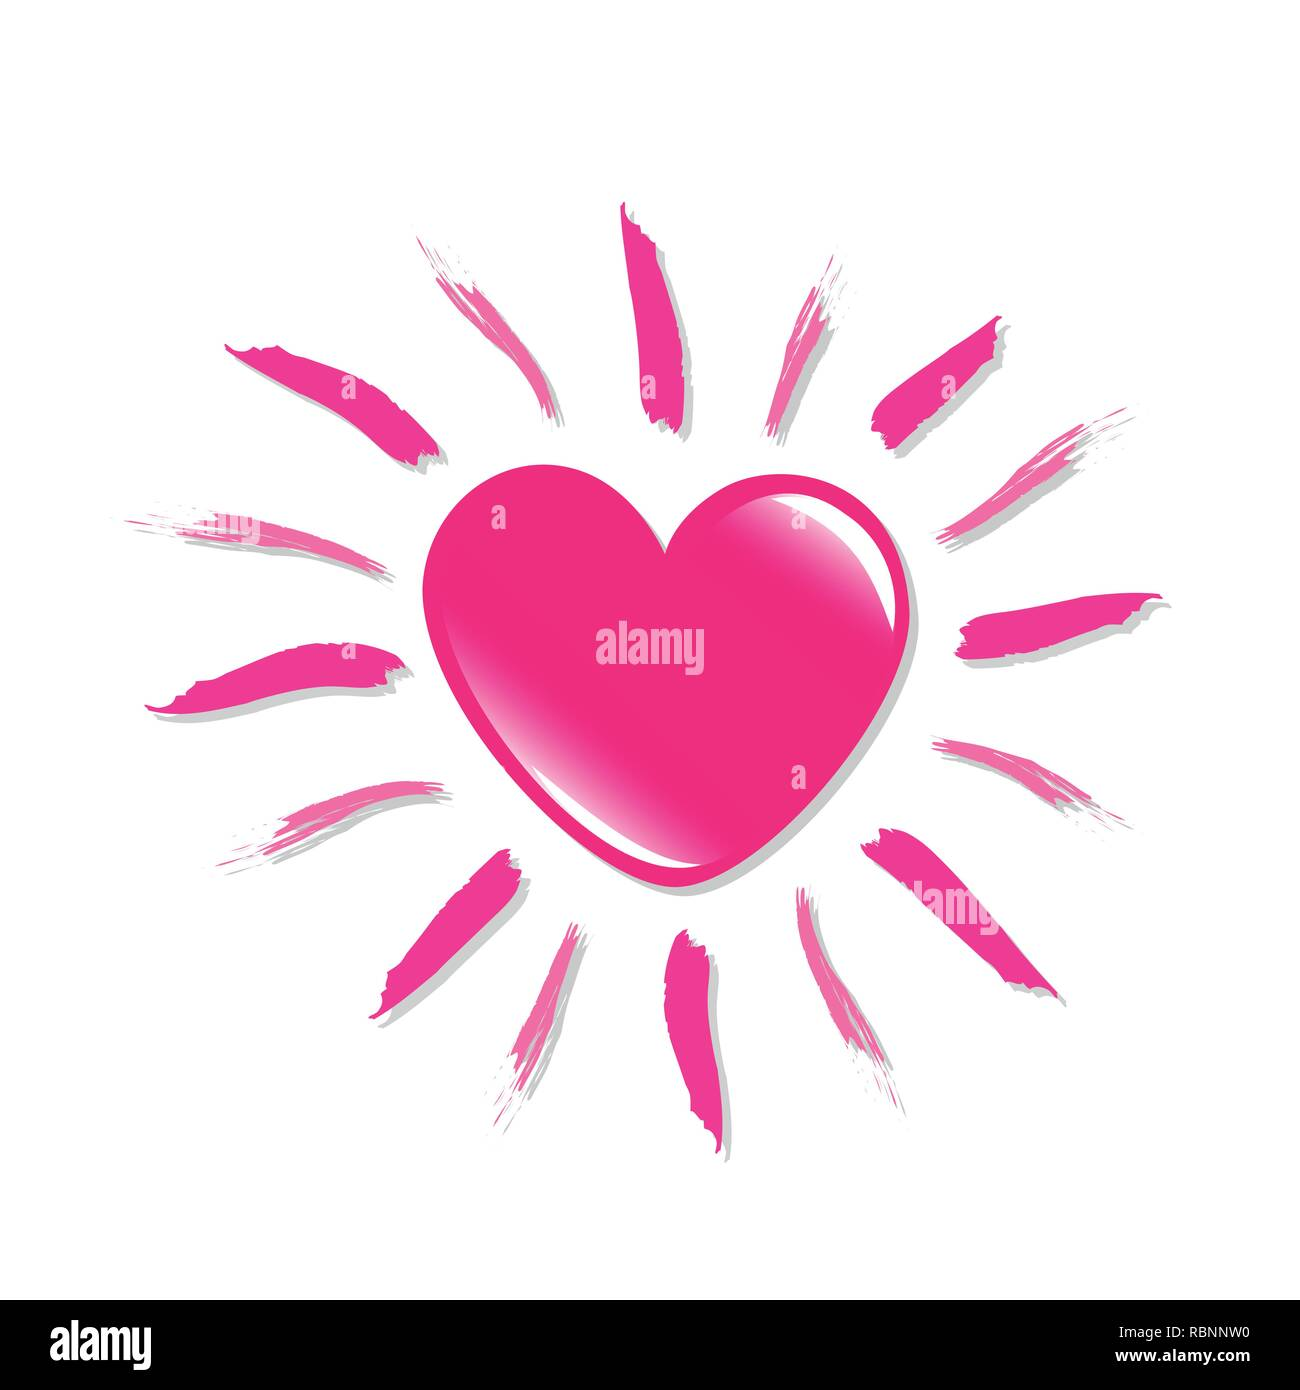 pink heart shaped sun isolated on white backgound vector illustraton EPS10 - Stock Vector